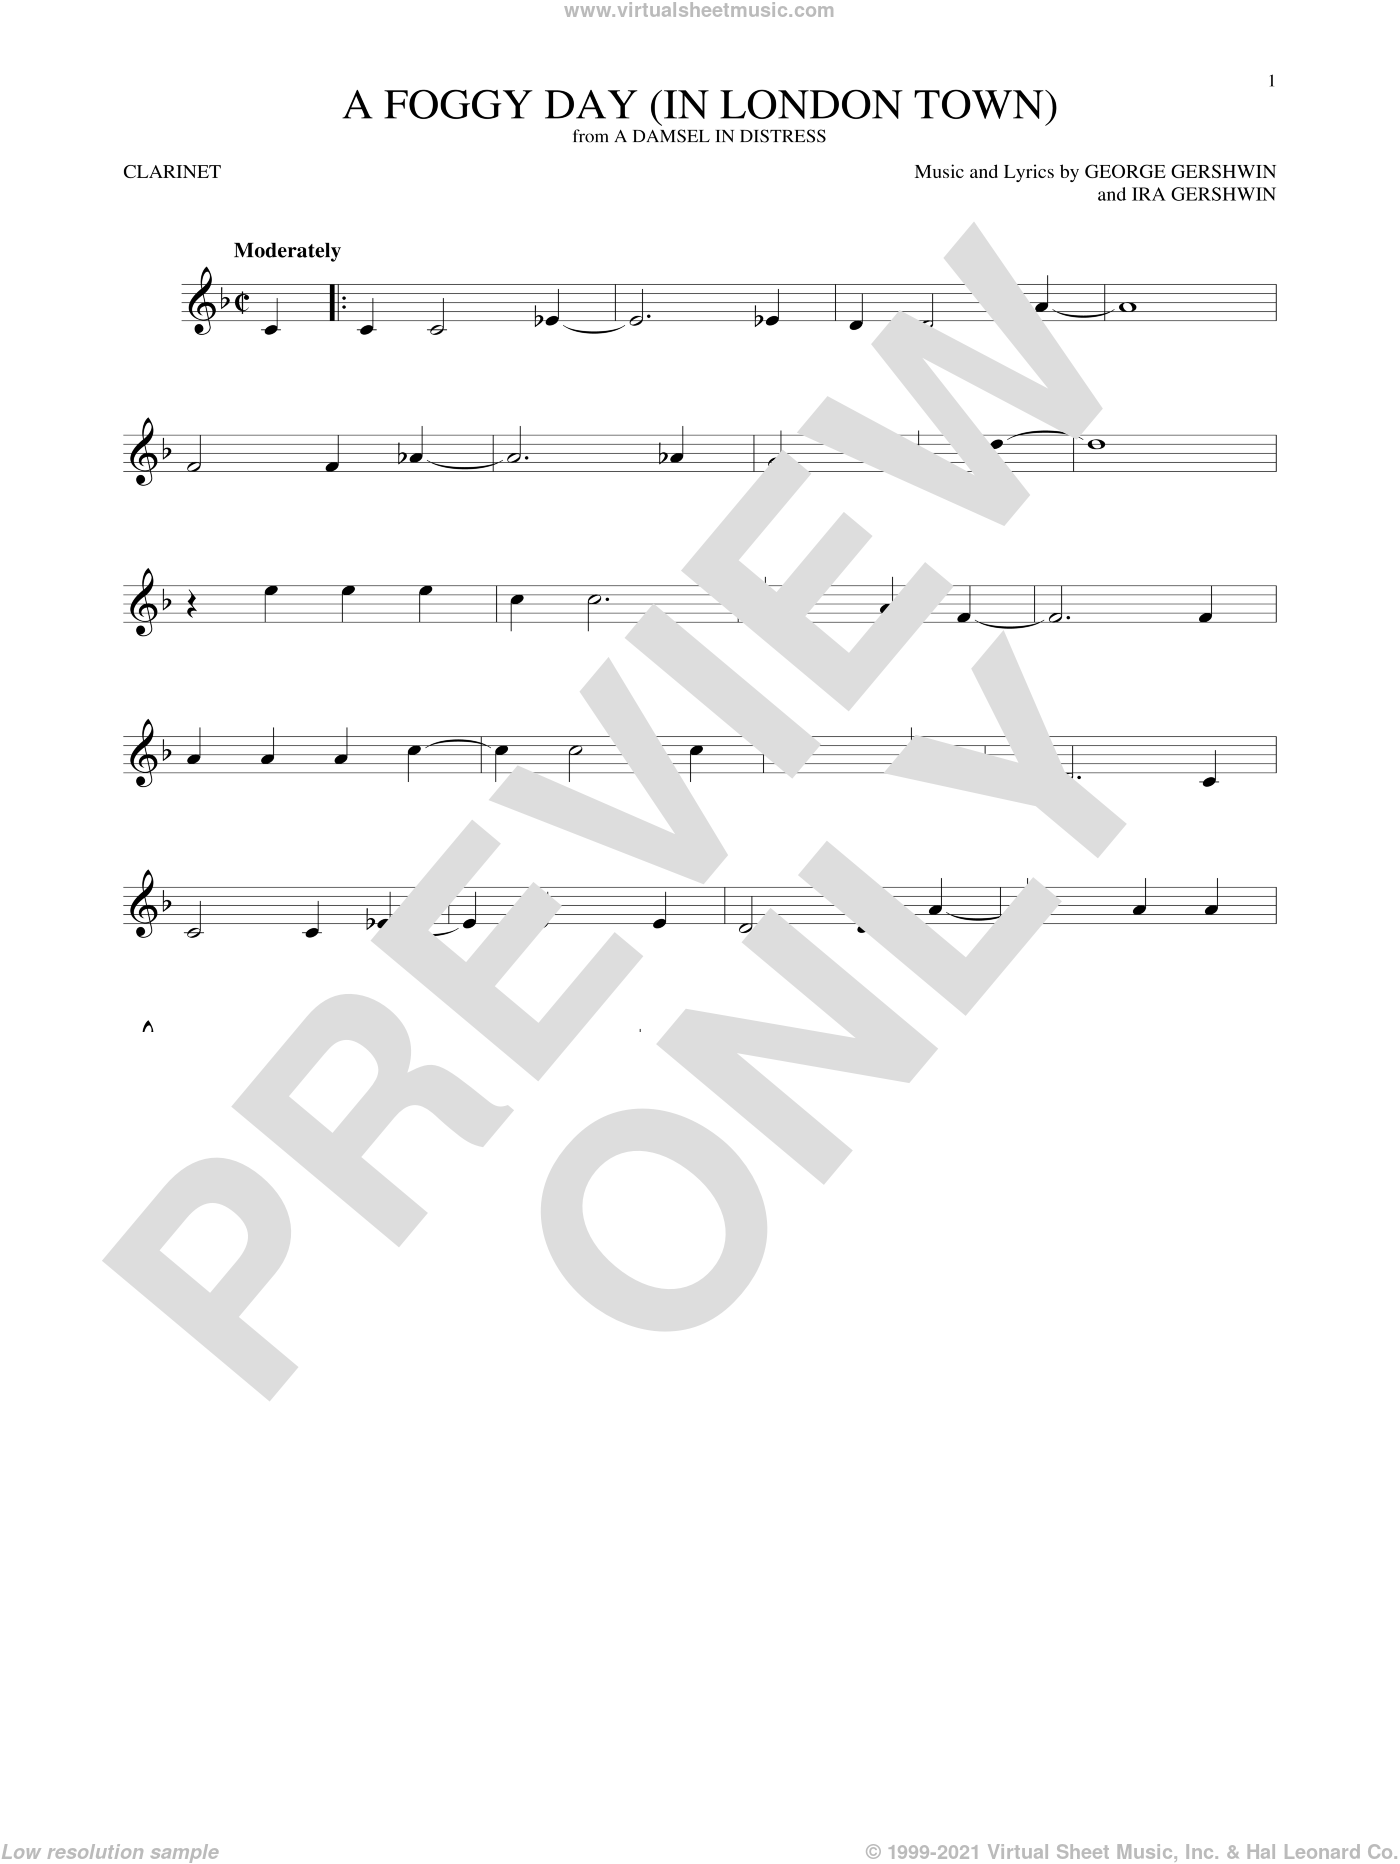 A Foggy Day (In London Town) sheet music for clarinet solo by George Gershwin and Ira Gershwin, intermediate